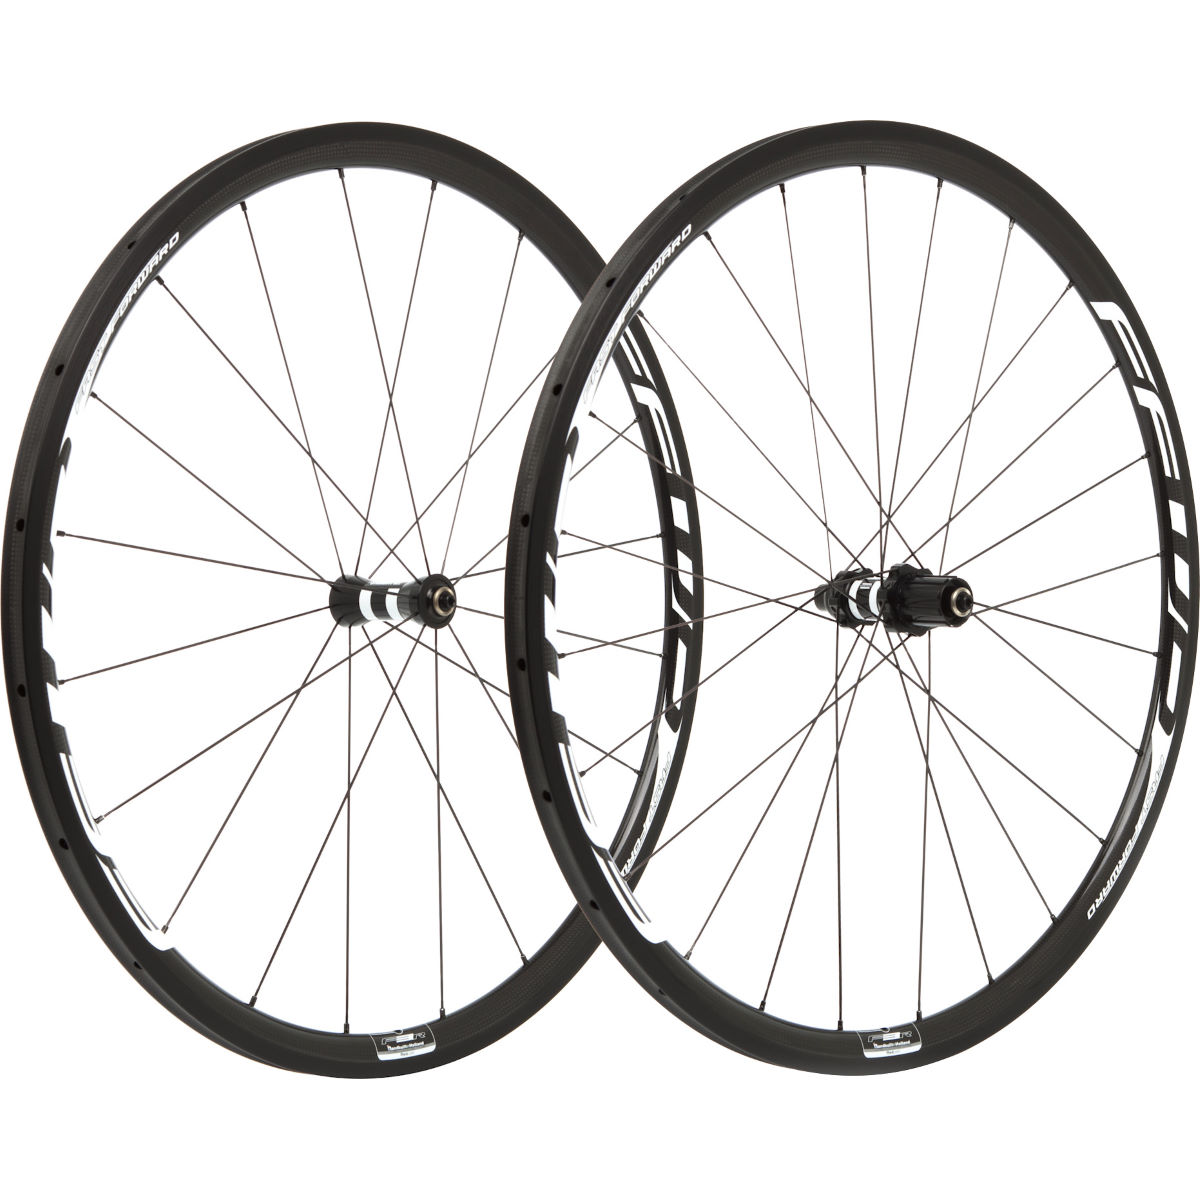 Fast Forward Carbon F3R Tubular 30mm SP Wheelset - Juegos de ruedas